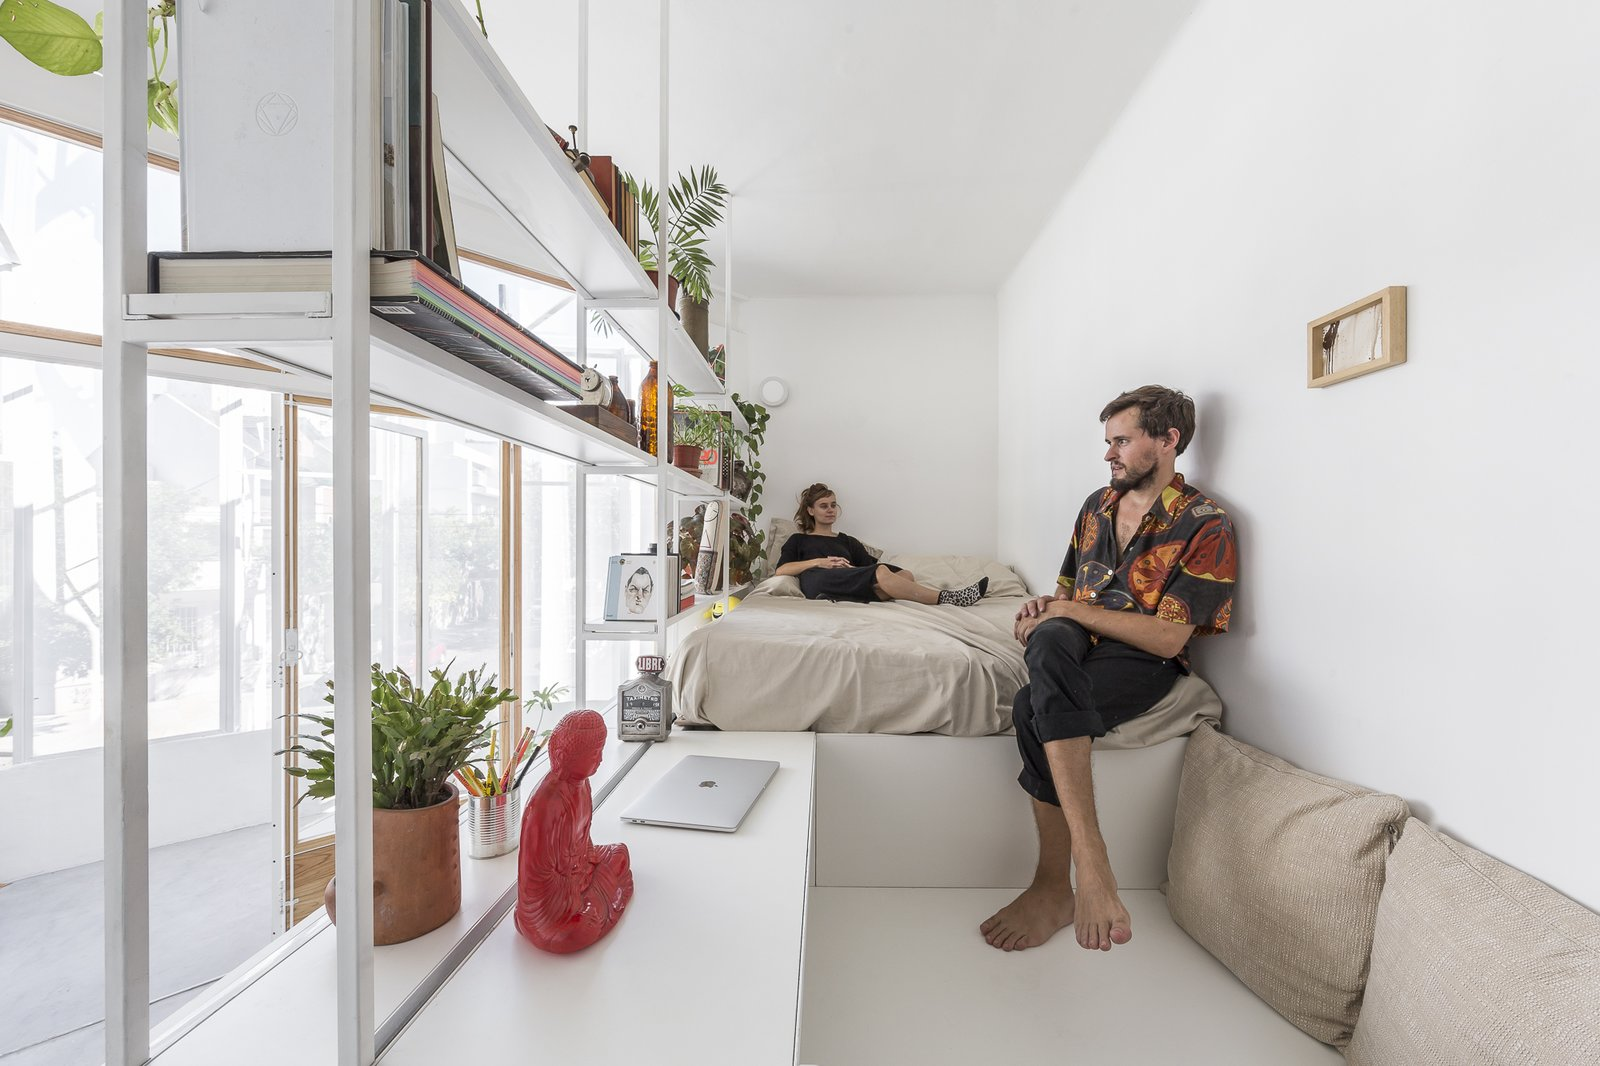 Bedroom, Bookcase, Storage, Shelves, Bed, Concrete, and Wall The sleeping and study nook sit on a raised platform, and are surrounded by open shelving filled with books and plants.     Bedroom Wall Bookcase Photos from A Perforated Balcony Brings Ample Light Into a Tiny Abode